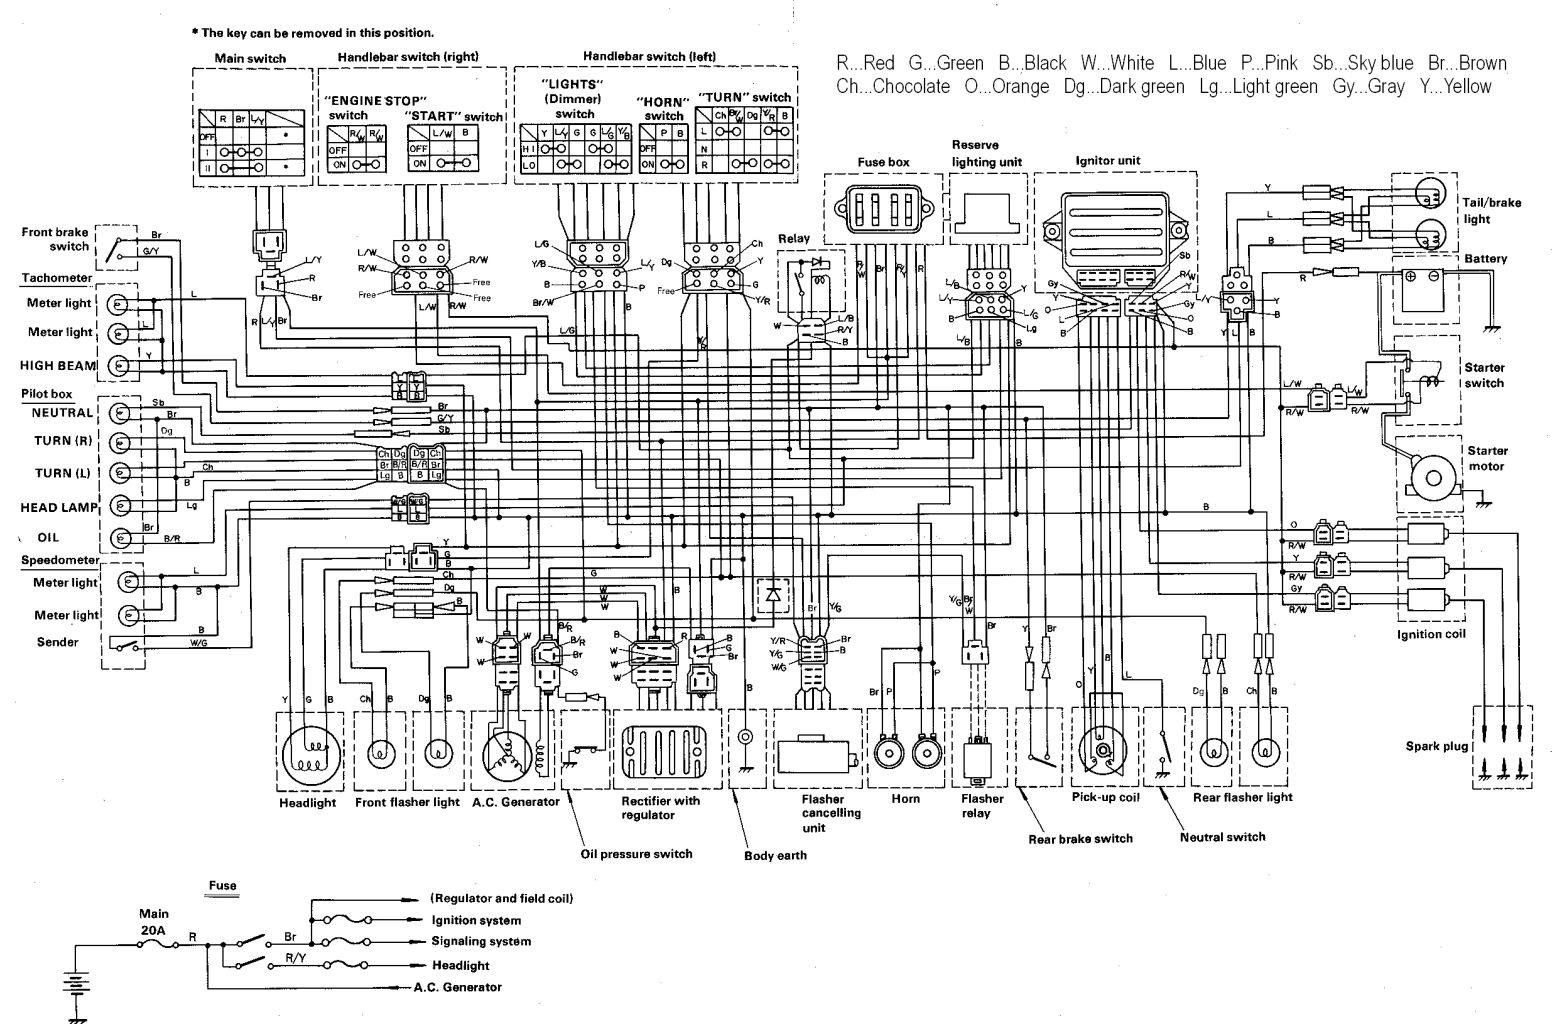 Yamaha 750 Wiring Diagram Great Installation Of 1982 Virago Box Rh 35 Pfotenpower Ev De